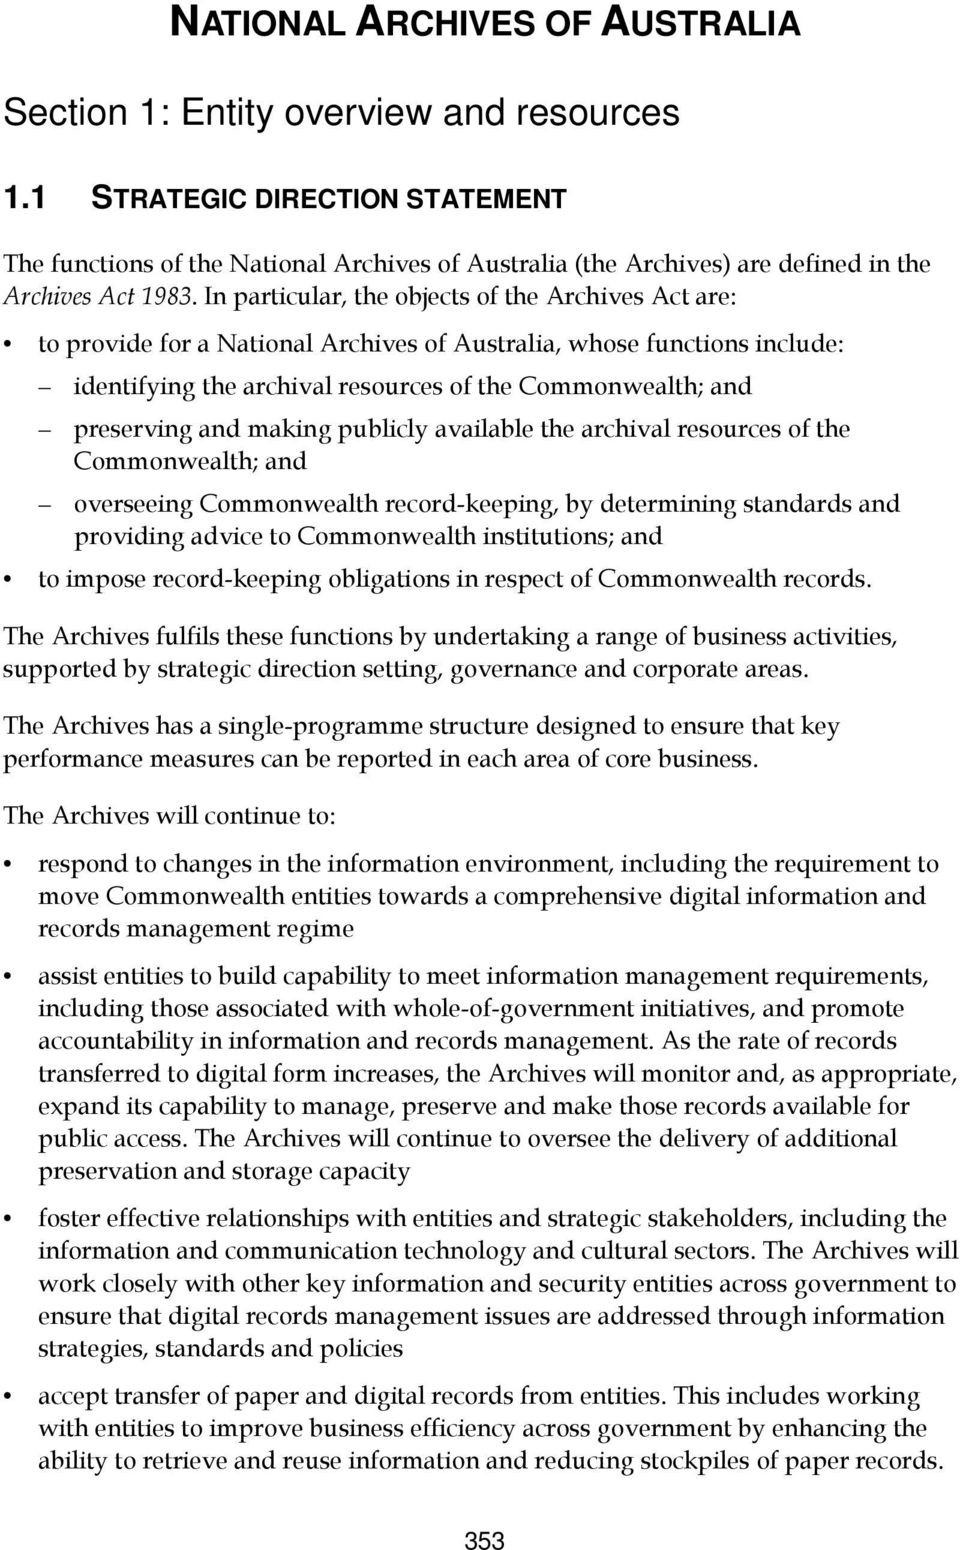 In particular, the objects of the Archives Act are: to provide for a National Archives of Australia, whose functions include: identifying the archival resources of the Commonwealth; and preserving